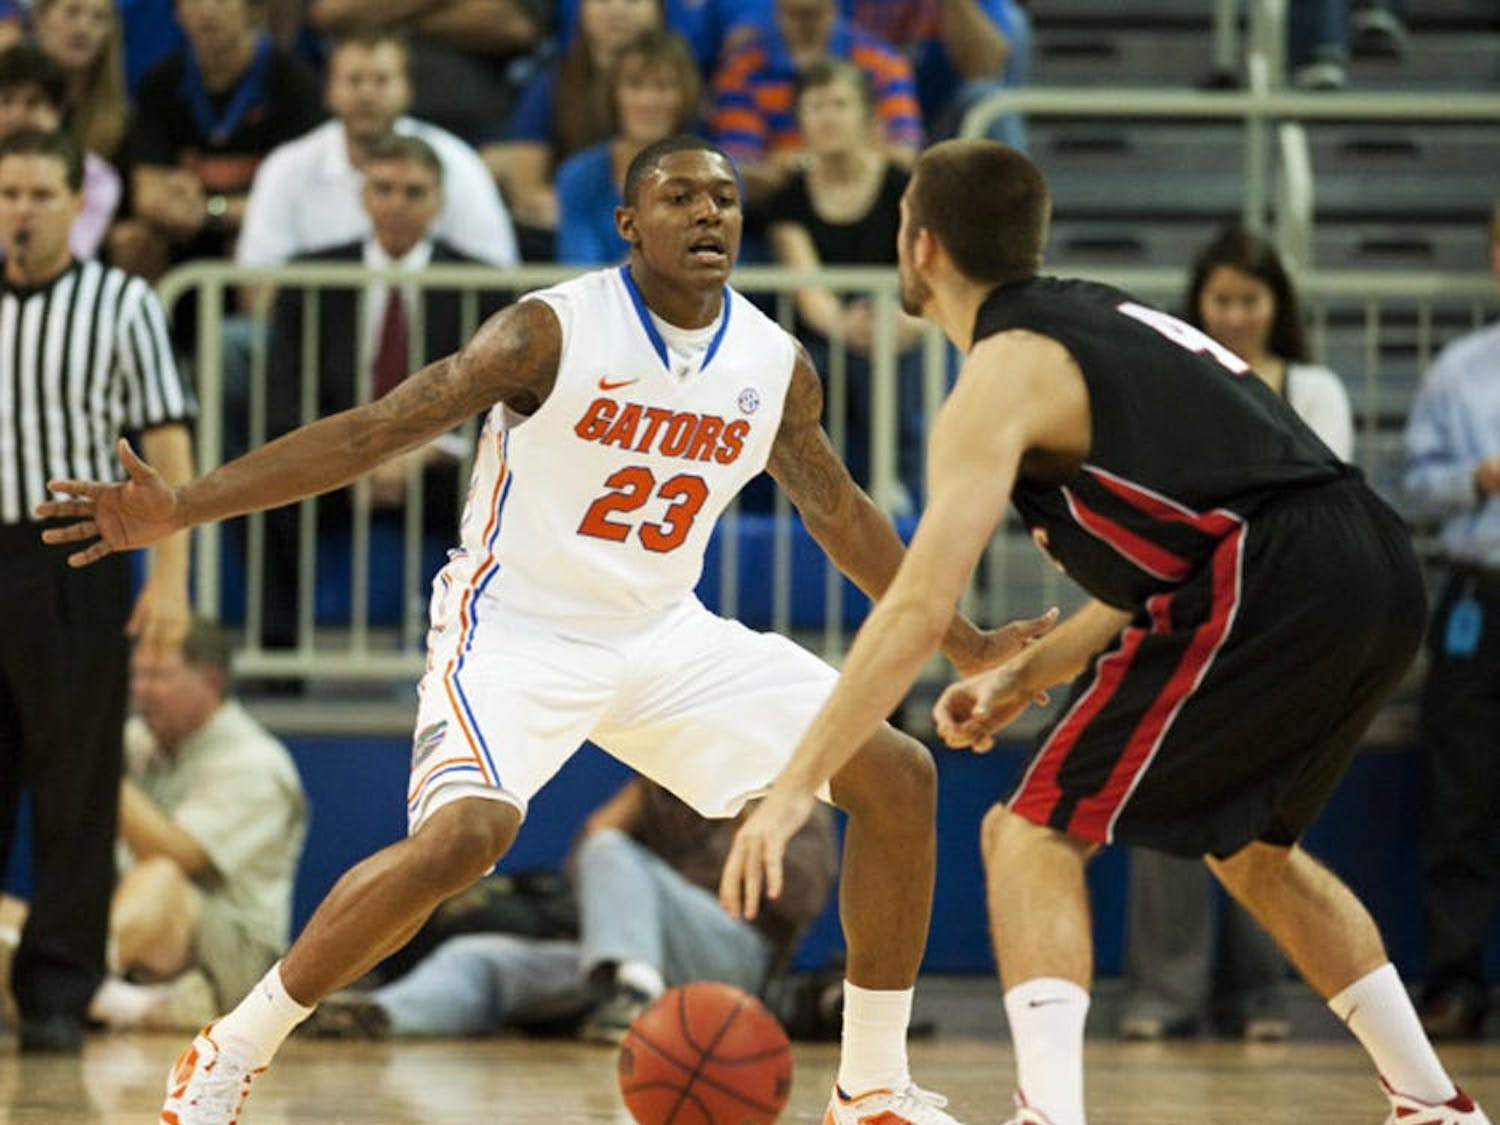 Former Gator Bradley Beal was named to the US Olympic Team Wednesday.